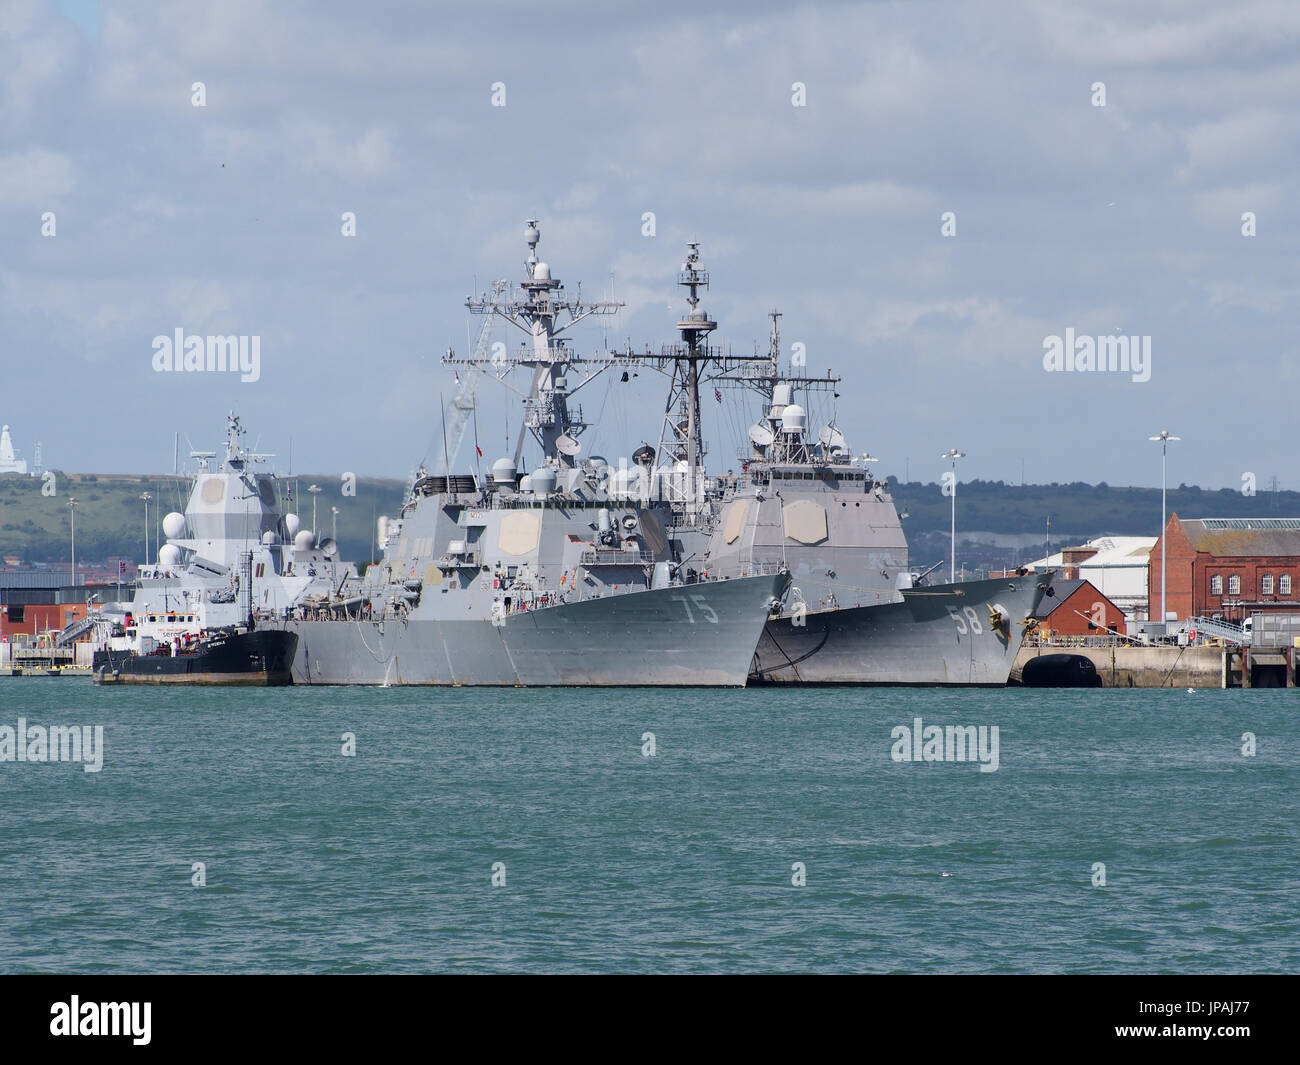 The USS Philippine Sea and the USS Donald Cook berthed together at Her Majesties Naval Base Portsmouth , England - Stock Image